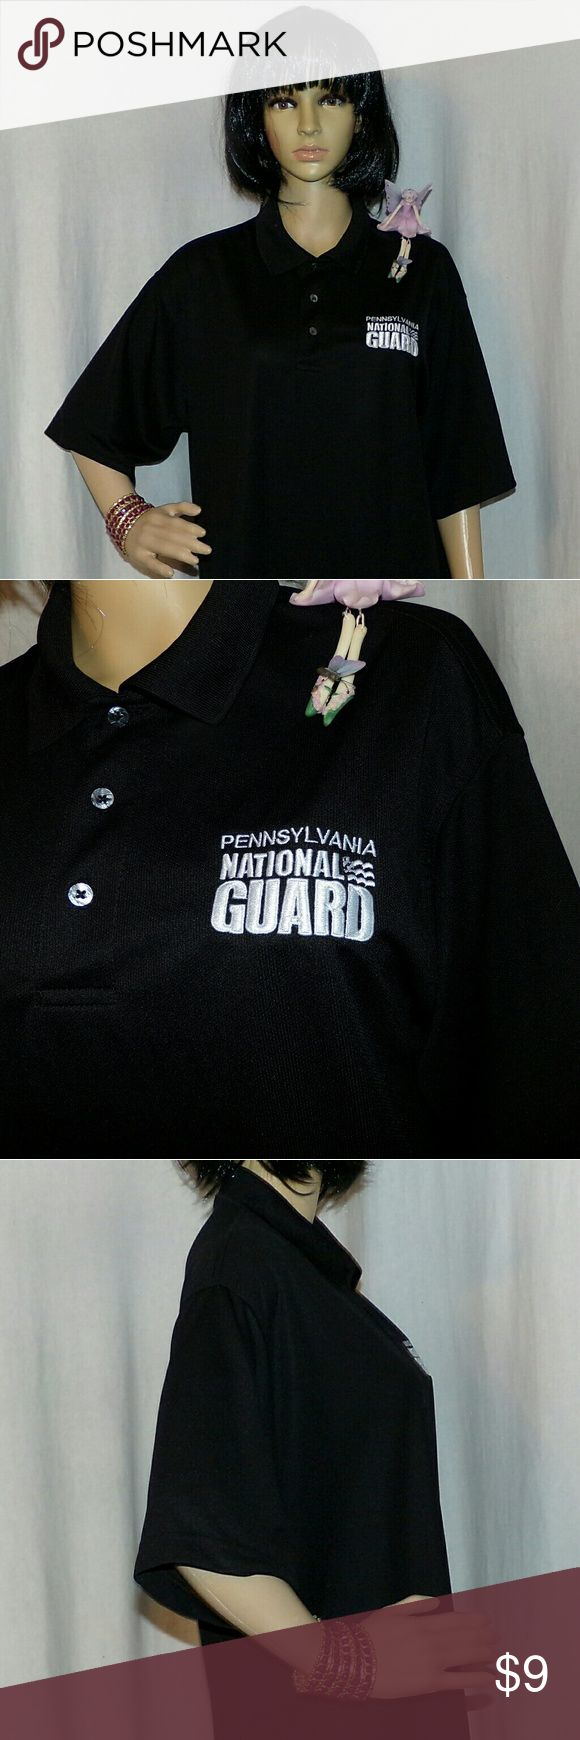 Pennsylvania National Guard  Polo Shirt Really nice in as new condition this is an Embroidered Polo shirt black in color. It is made of 100 percent polyester so it's a higher end brand. Almost like a dry fit very nice. Totally checked over by our crack team of inspection fairies and given their two wings  up kiss of approval so you can buy with confidence PA National  Guard Tops Button Down Shirts